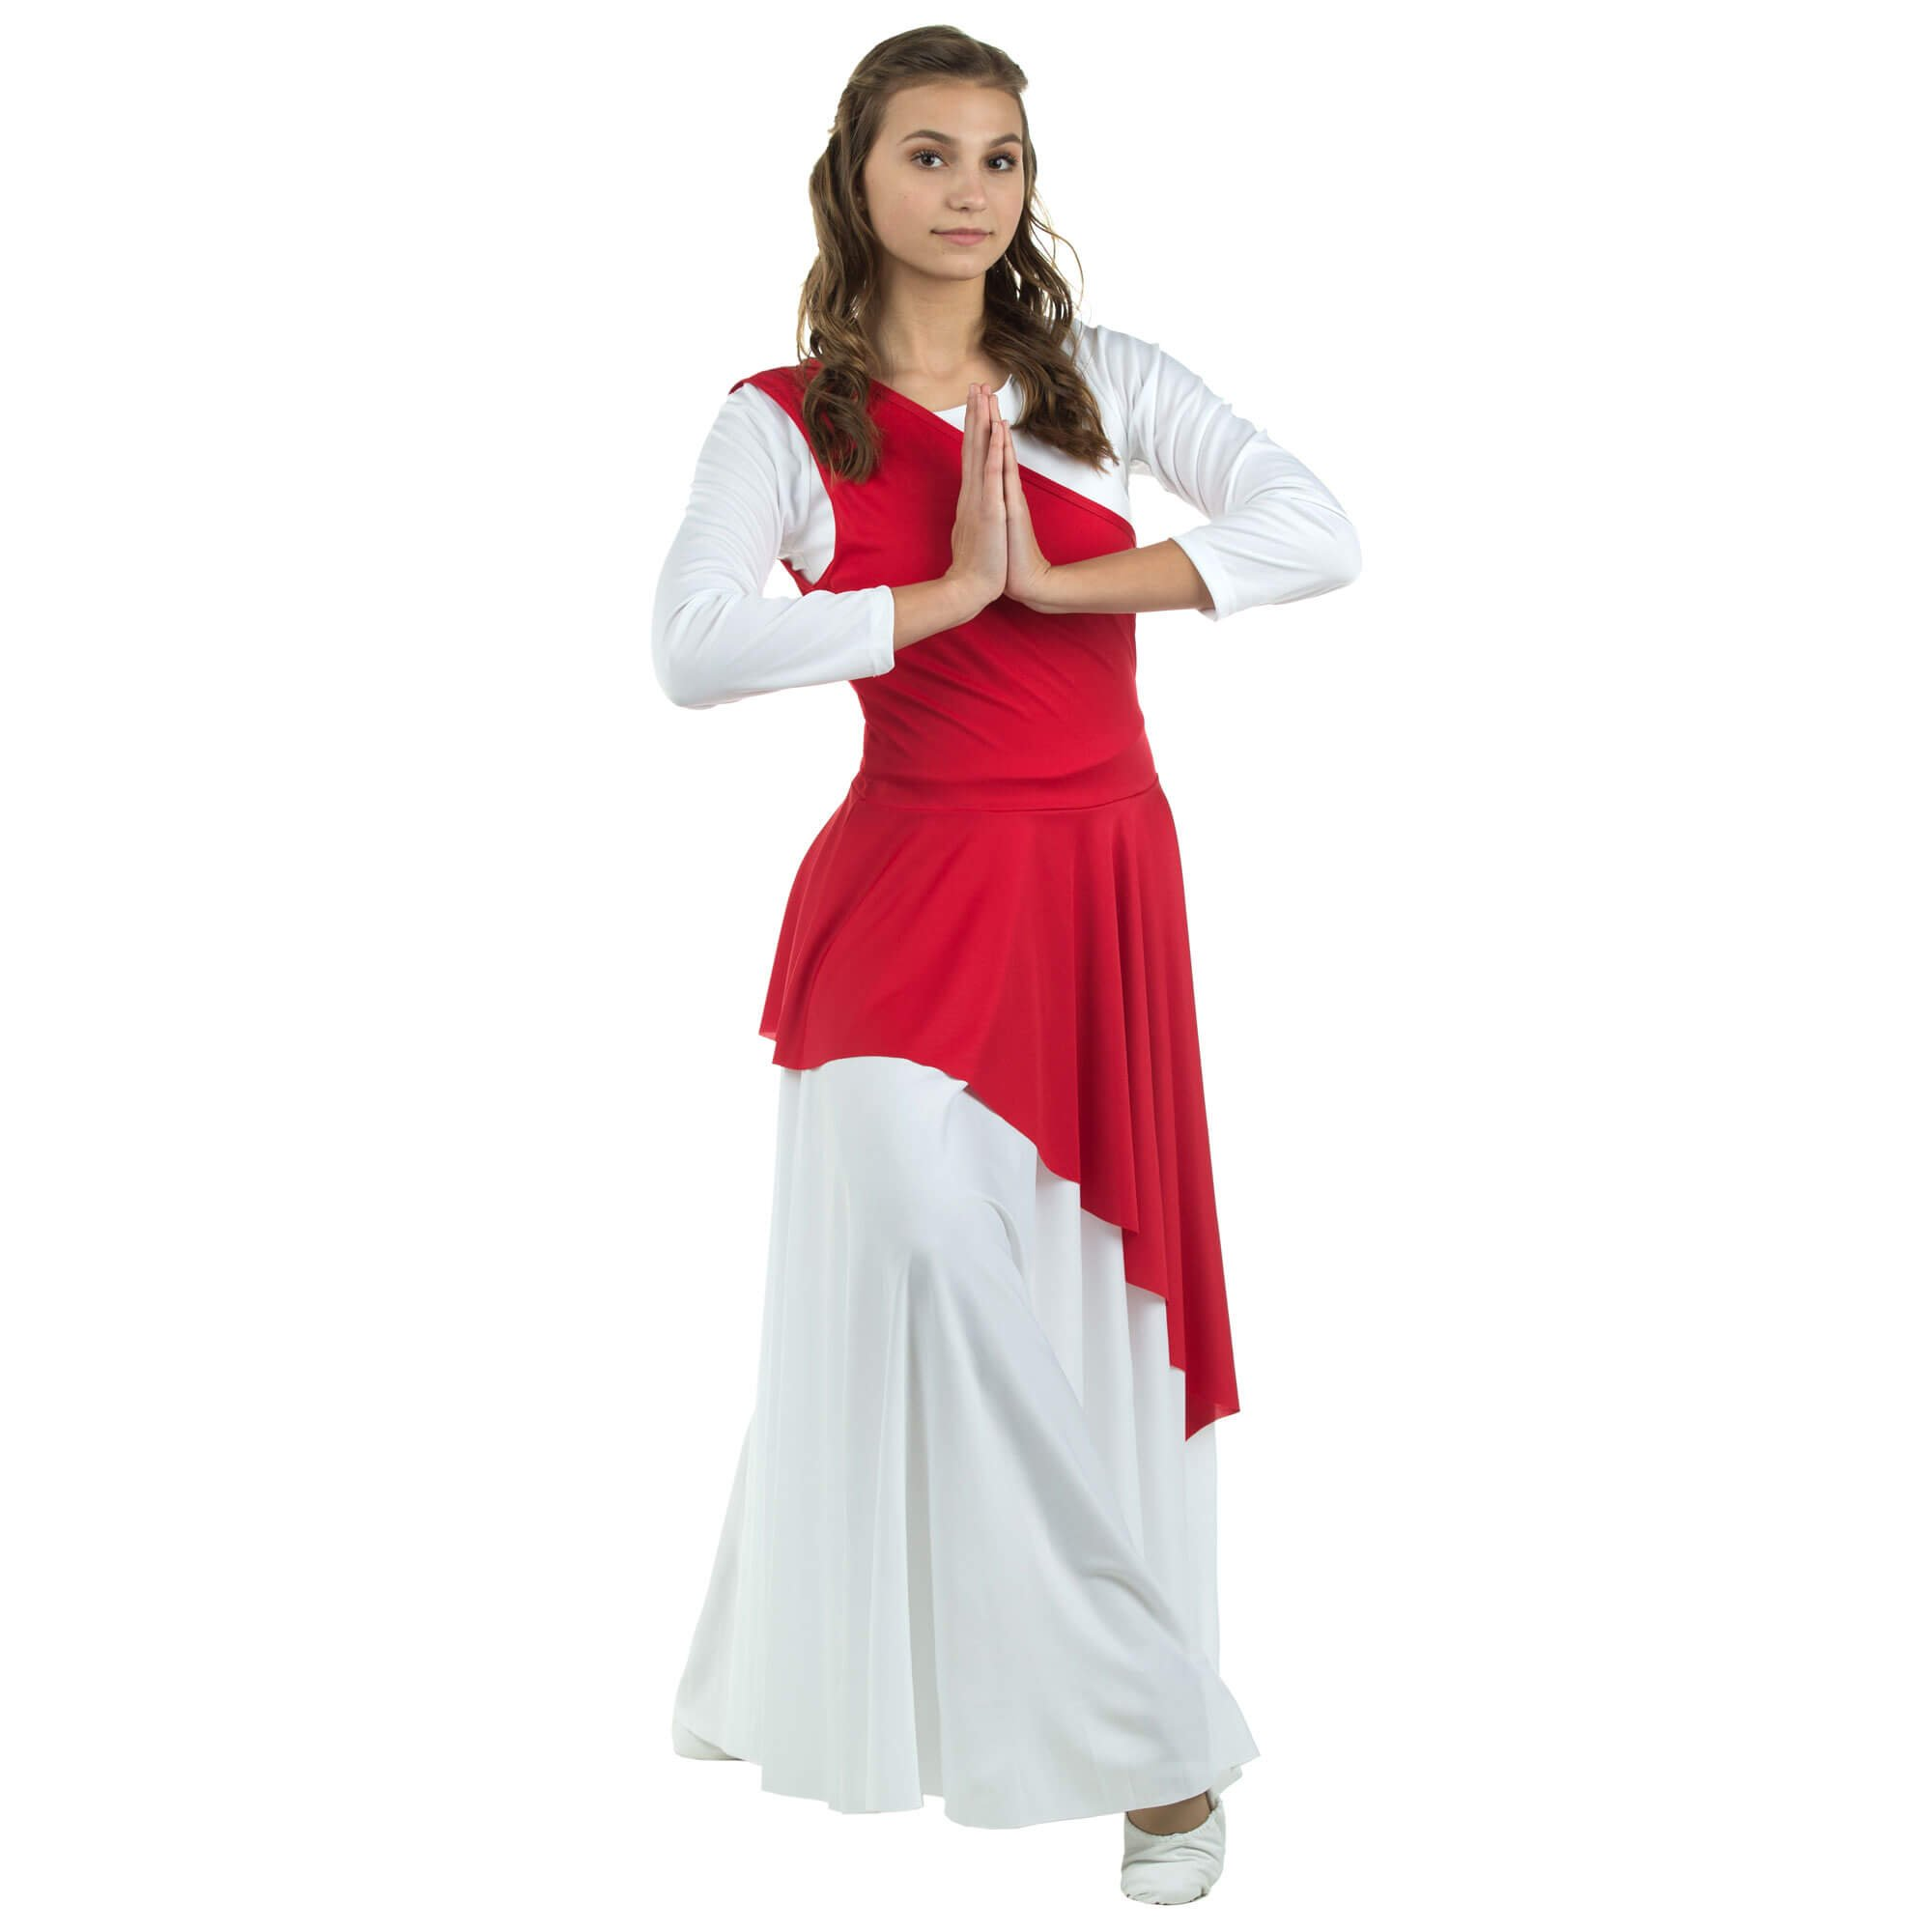 Danzcue Asymmetrical Praise Dance Tunic  sc 1 st  Danzia & Worship Dancewear: mime costume church dresses praise dance ...